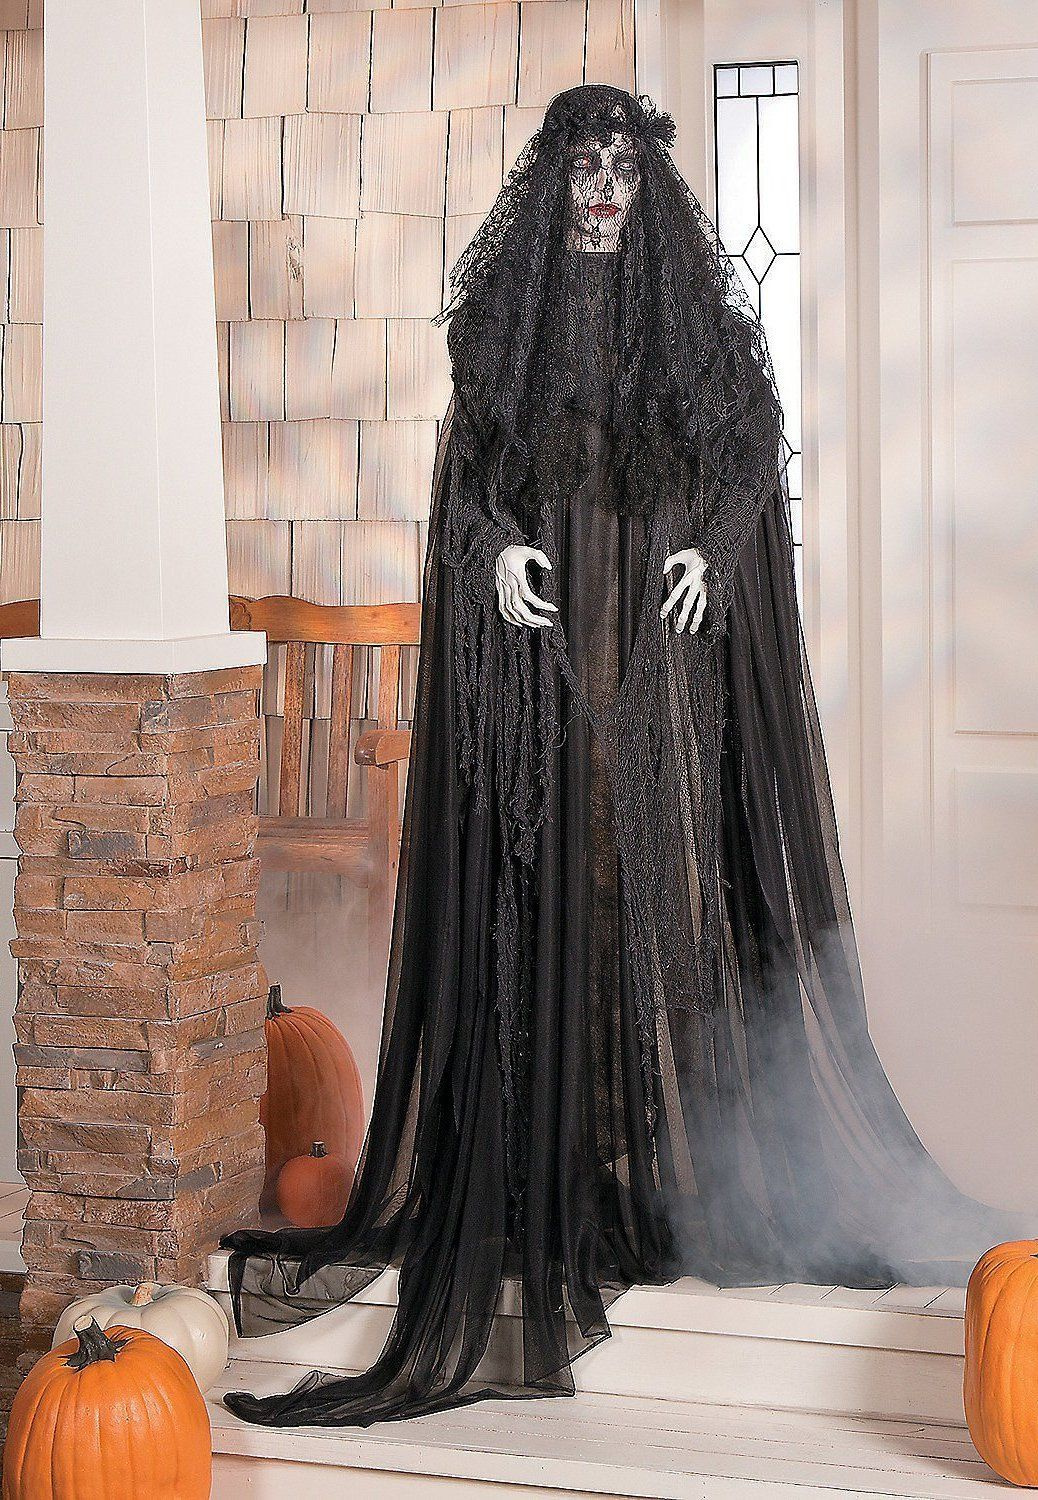 Haunting Lady Halloween Witches Decorations Halloween ideas - Witch Decorations For Halloween